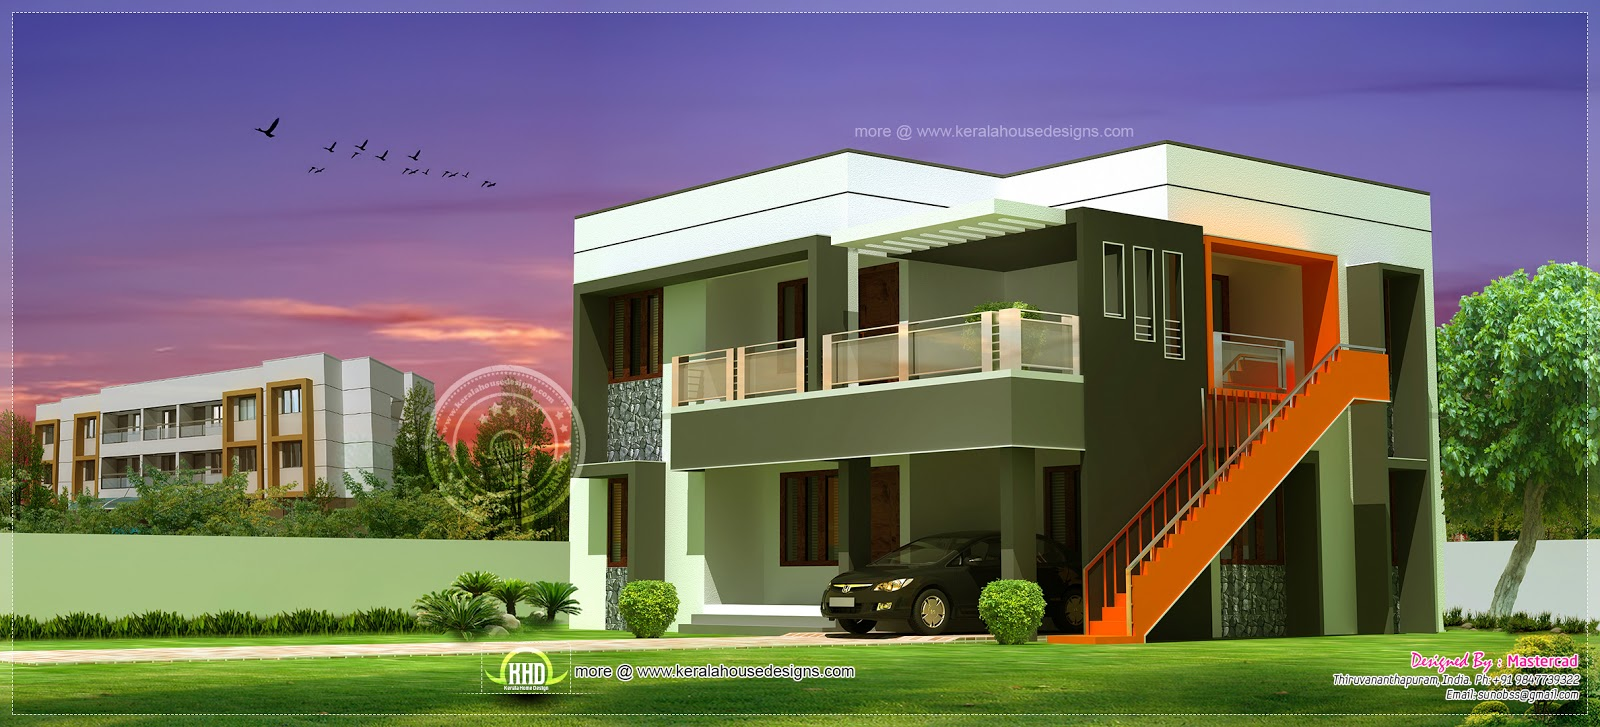 1811 Square Feet Contemporary House Exterior Kerala Home Design And Floor Plans